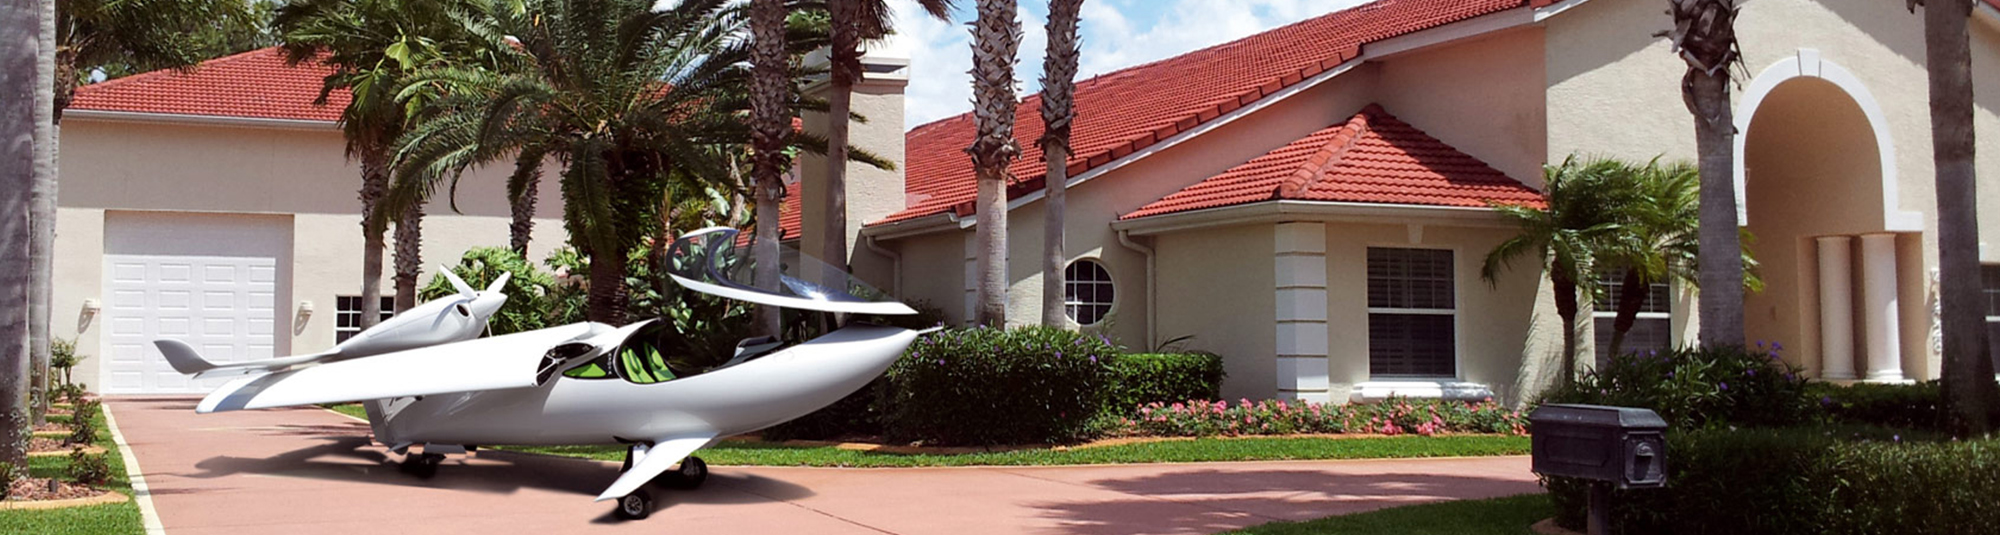 Seaplane with folding wings in front of a villa